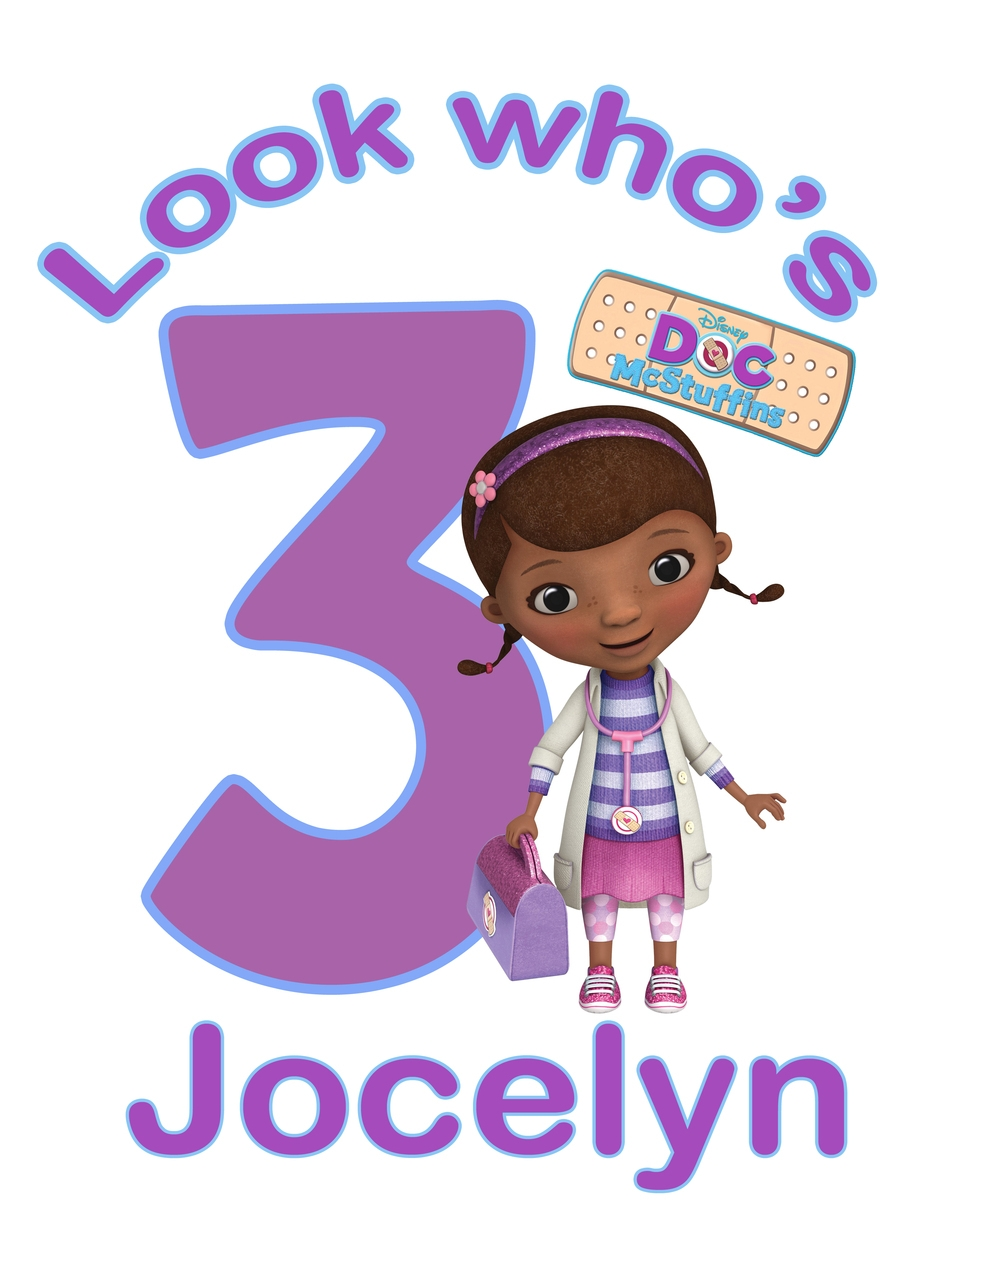 Doc mcstuffins 1st birthday clipart graphic free stock Doc mcstuffins 3rd birthday clipart - ClipartFest graphic free stock